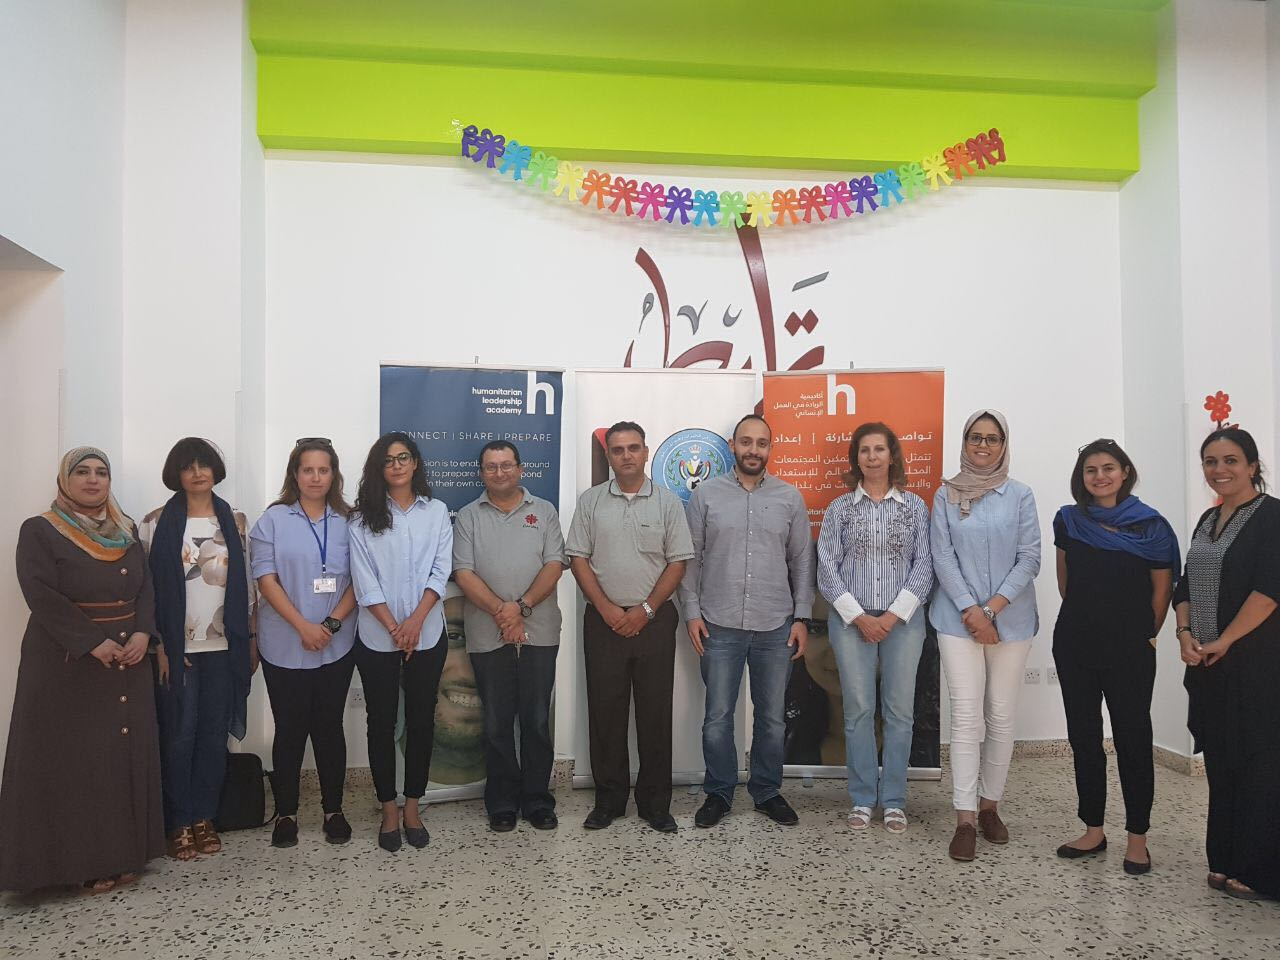 Jordan Collaboration Centre Gathers Experts To Develop A Humanitarian Learning Lexicon